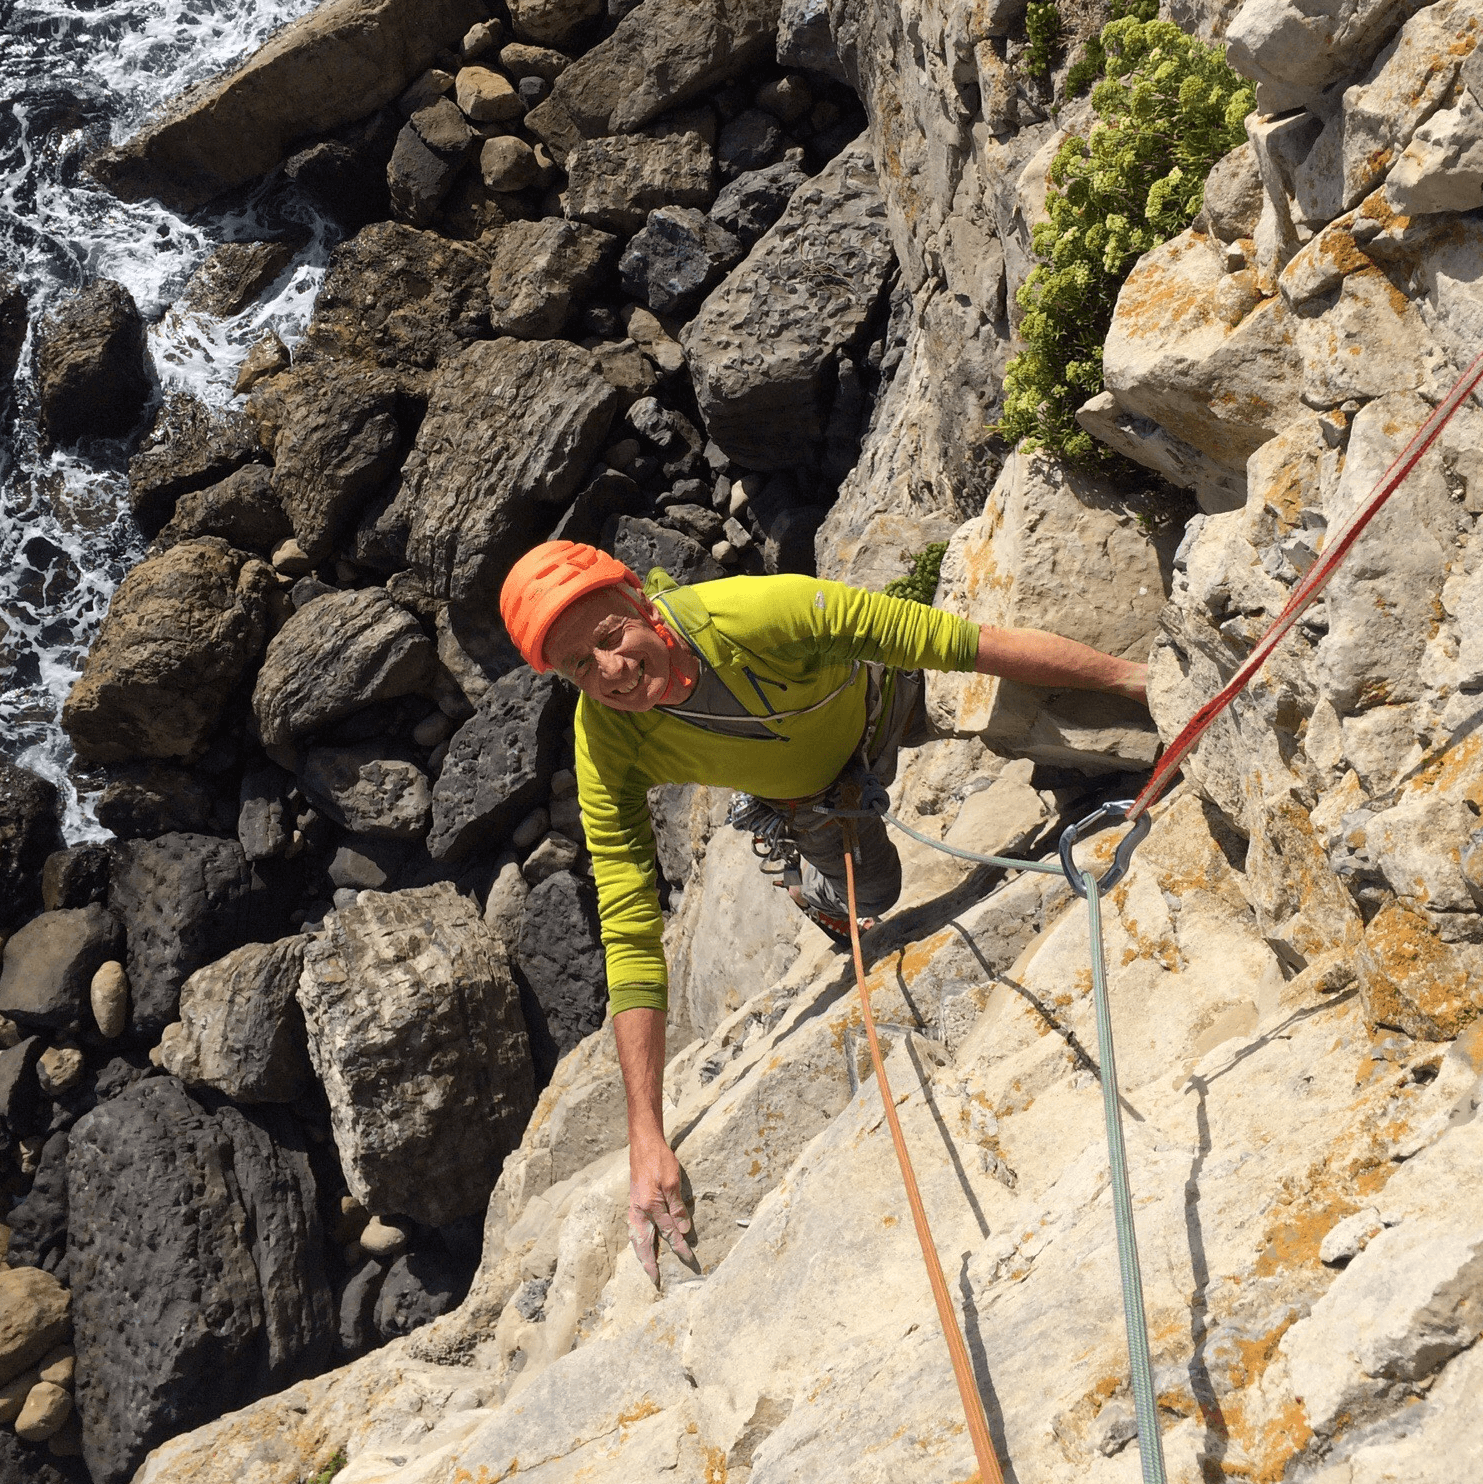 Rock climbing courses in the South West